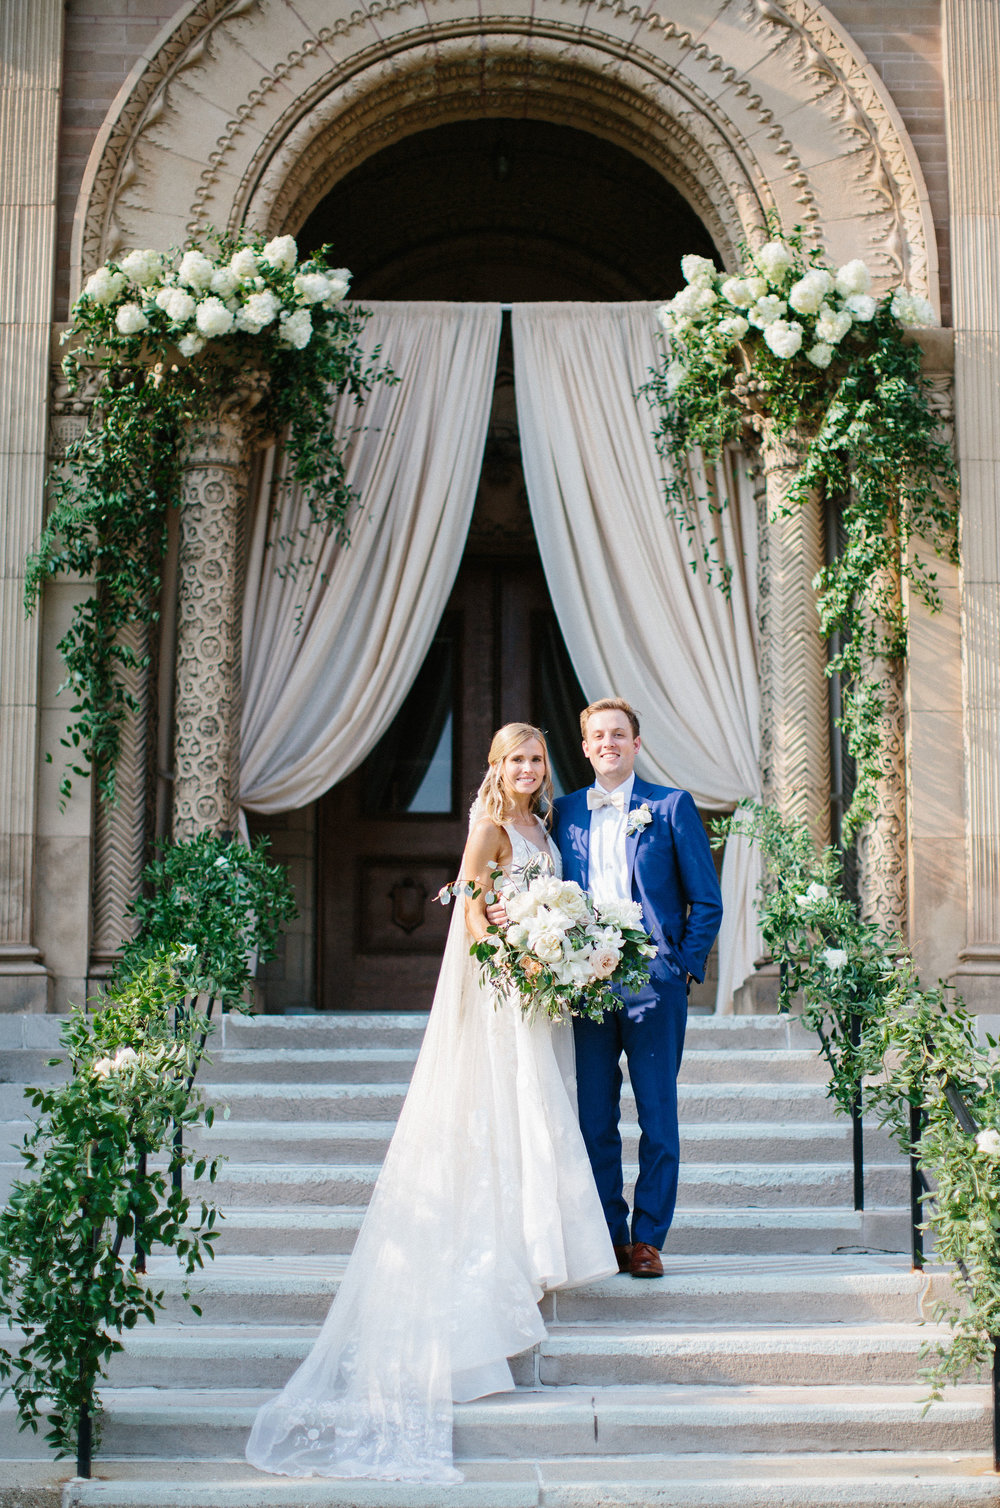 Photo credit: Kristina Lorraine Photography/ Floral: Frontier Flowers